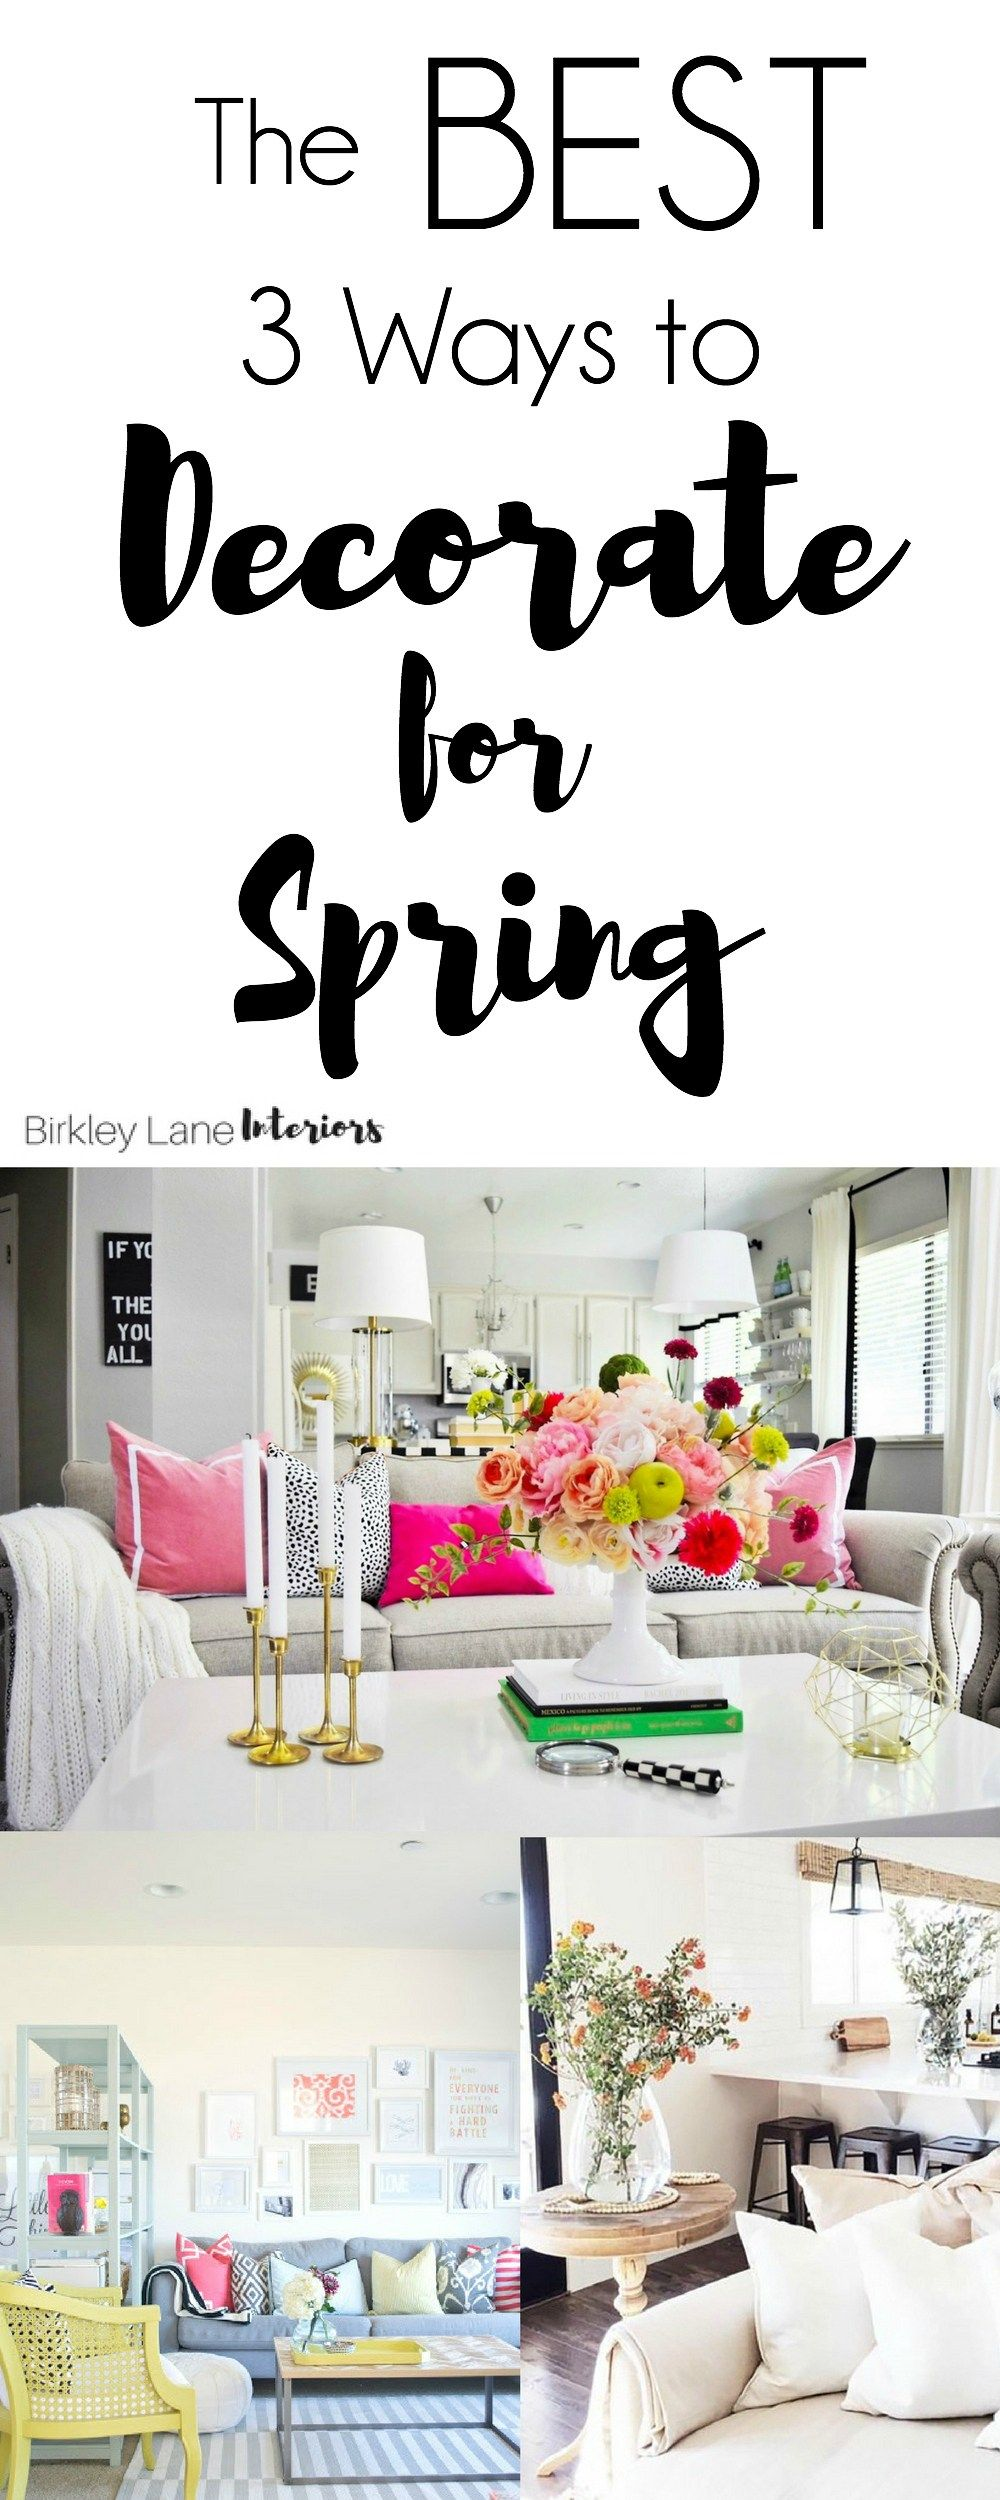 Stop here if you're looking for inspiration as you decorate for Spring! I'm sharing the best three ways you can decorate for the season! Decorate for Spring, Spring decor, how to decorate for spring, spring decor diy, spring decor ideas, spring decor for mantle, spring decor for front porch, decorating for spring